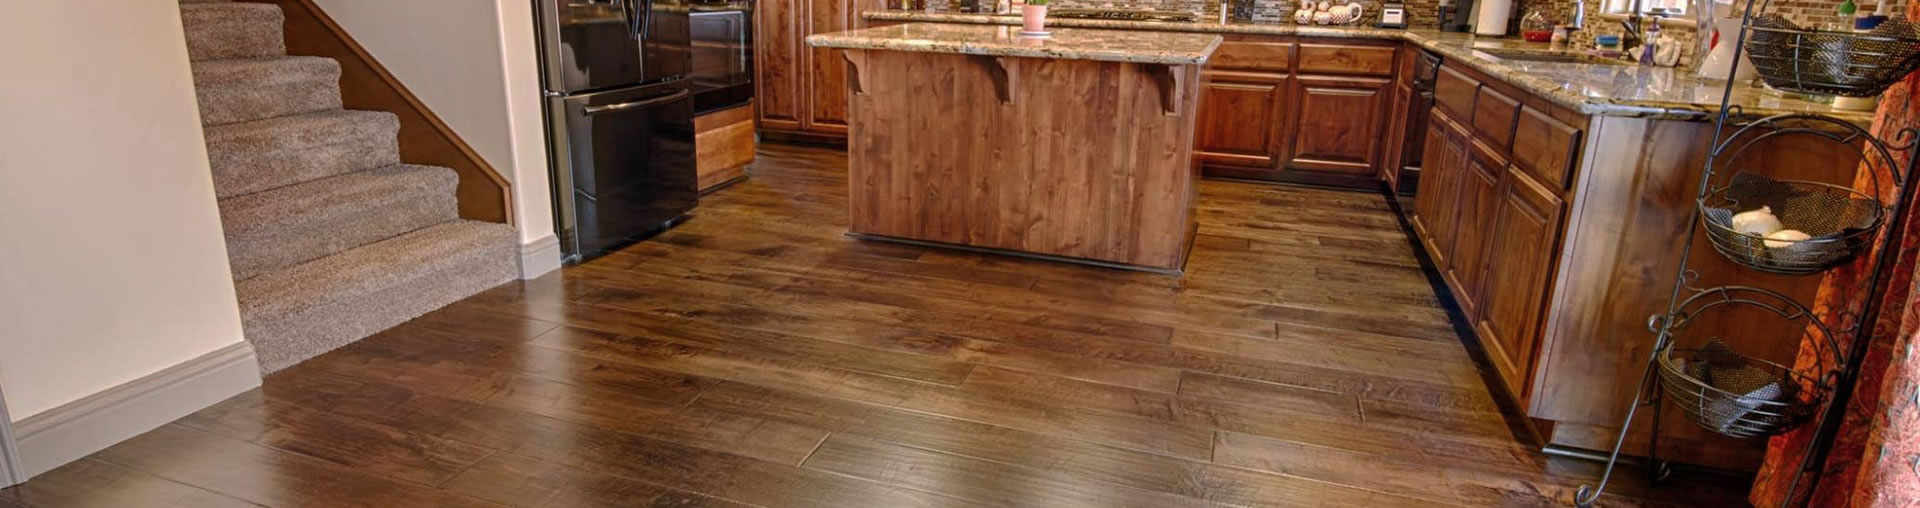 Most Durable Laminate Flooring Most Durable Laminate